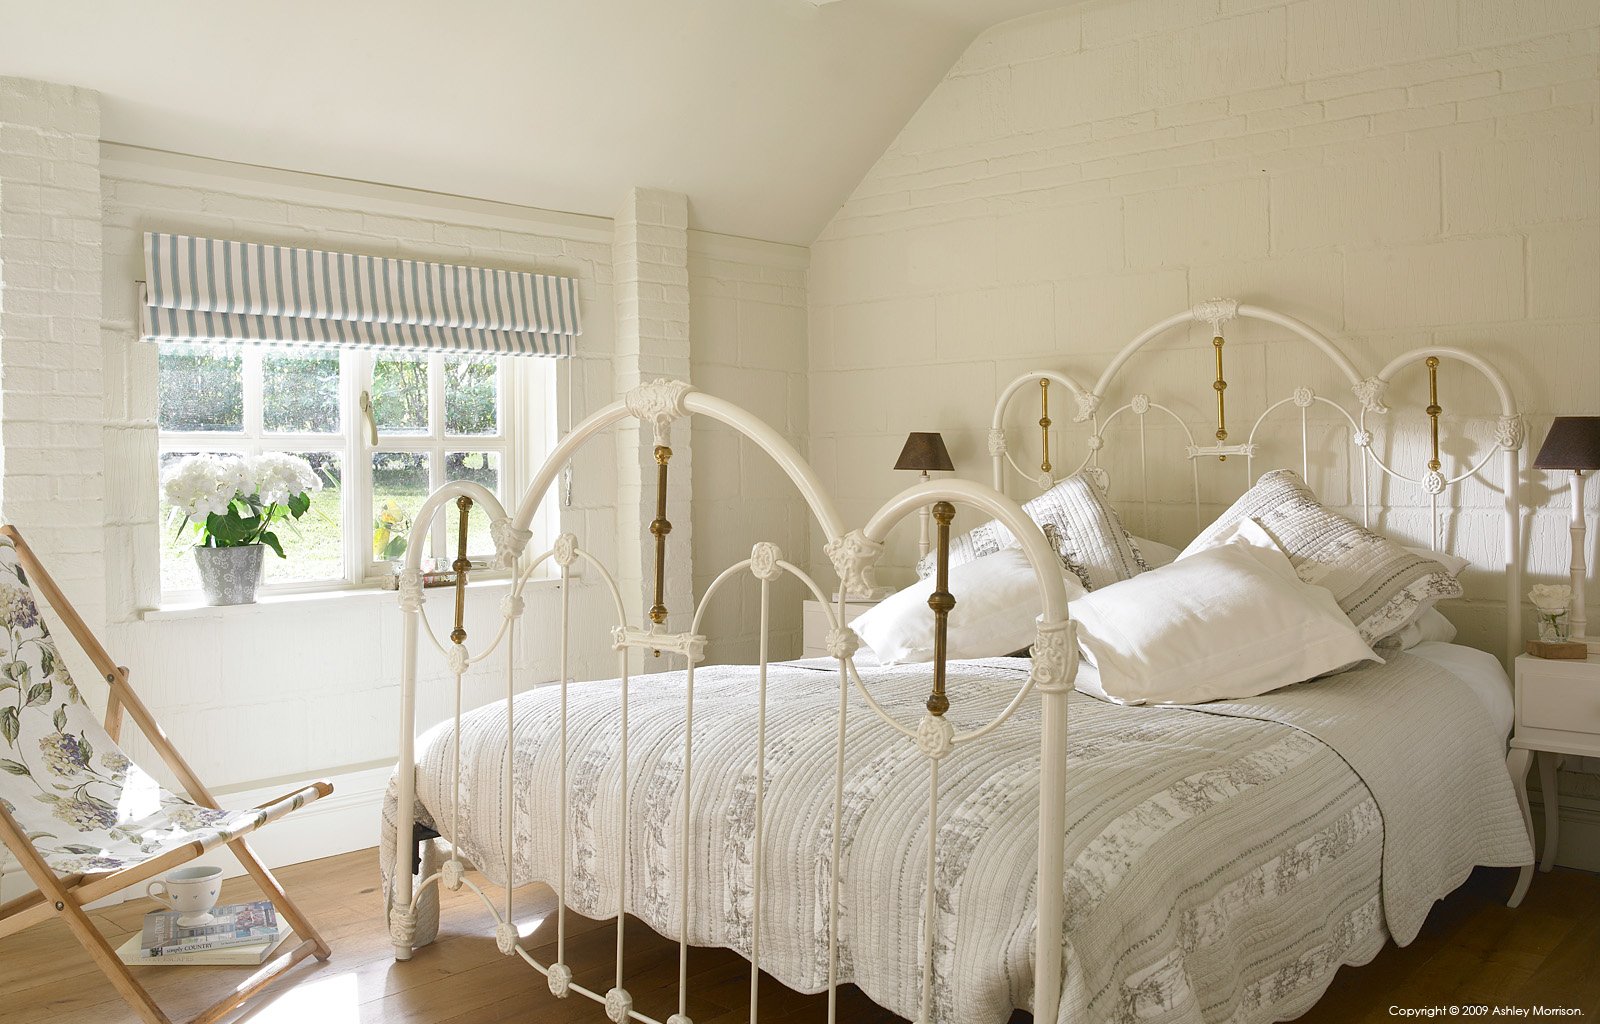 Guest bedroom in Beth & Jason Cooper's barn near Guildford in Surrey by Ashley Morrison.